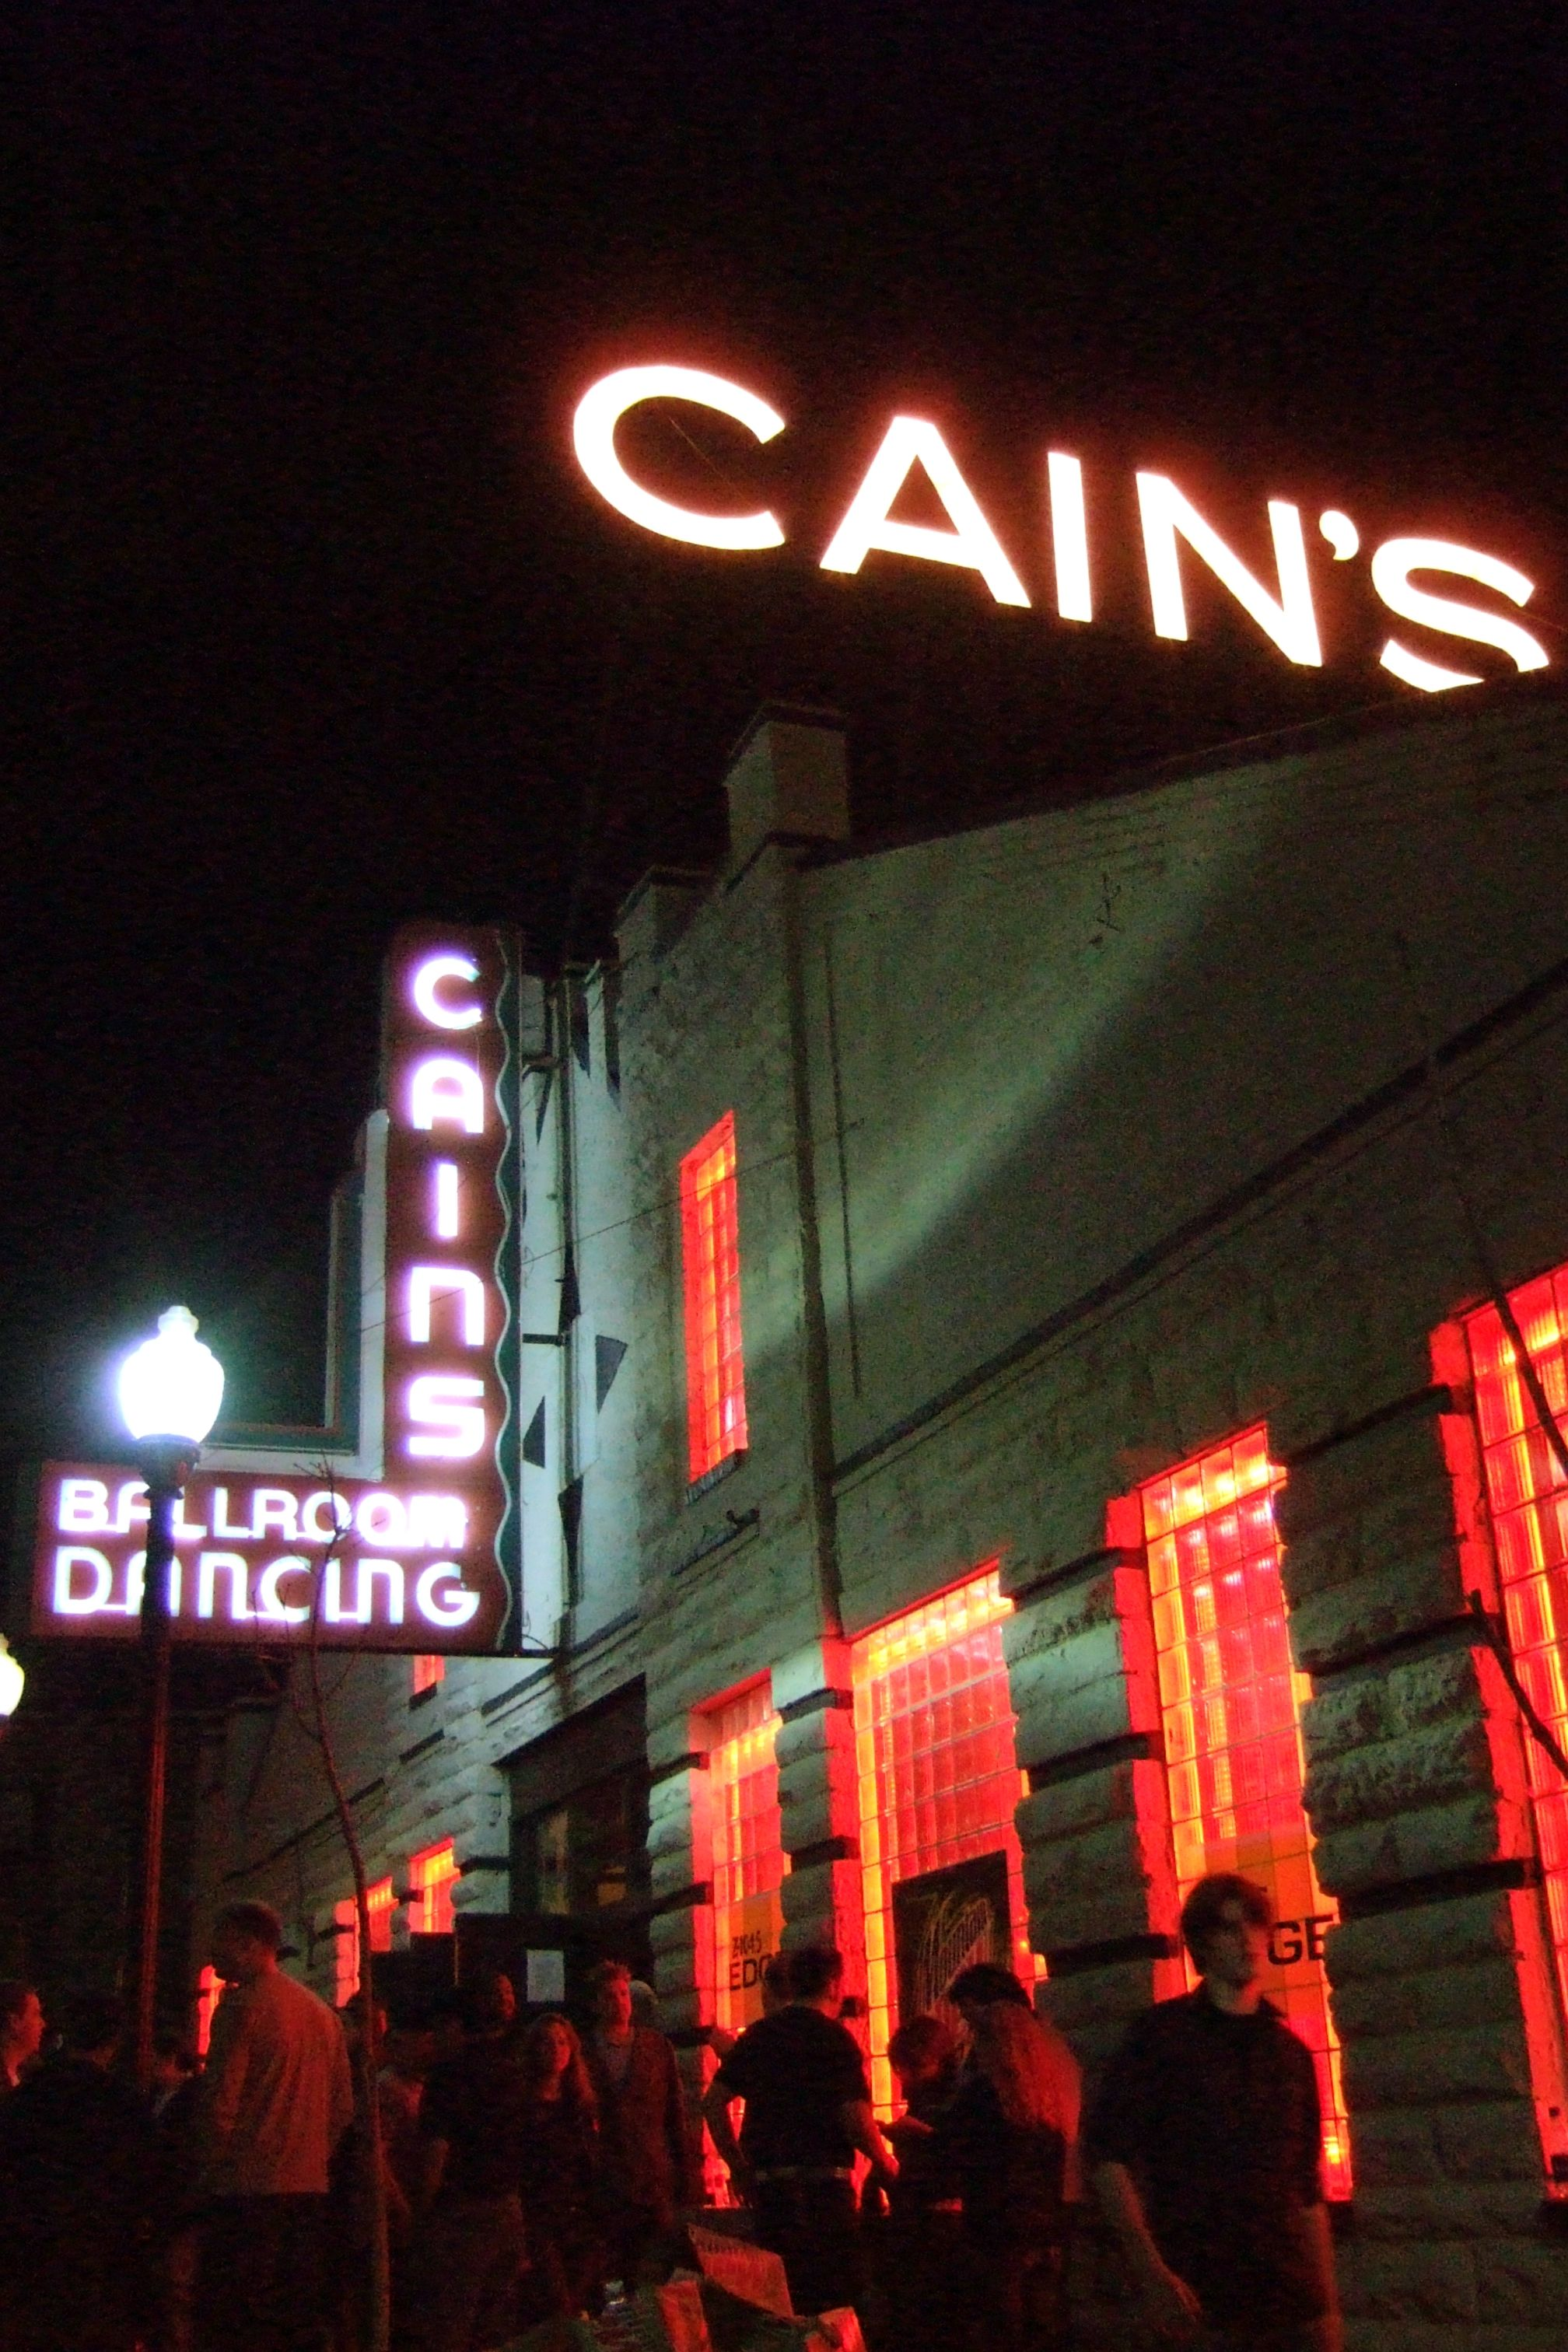 Cain S Ballroom Tulsa Ok I Dig The Neons Around Windows It Makes For Eye Catching Curb Eal And Would Set Off Night Photos Well